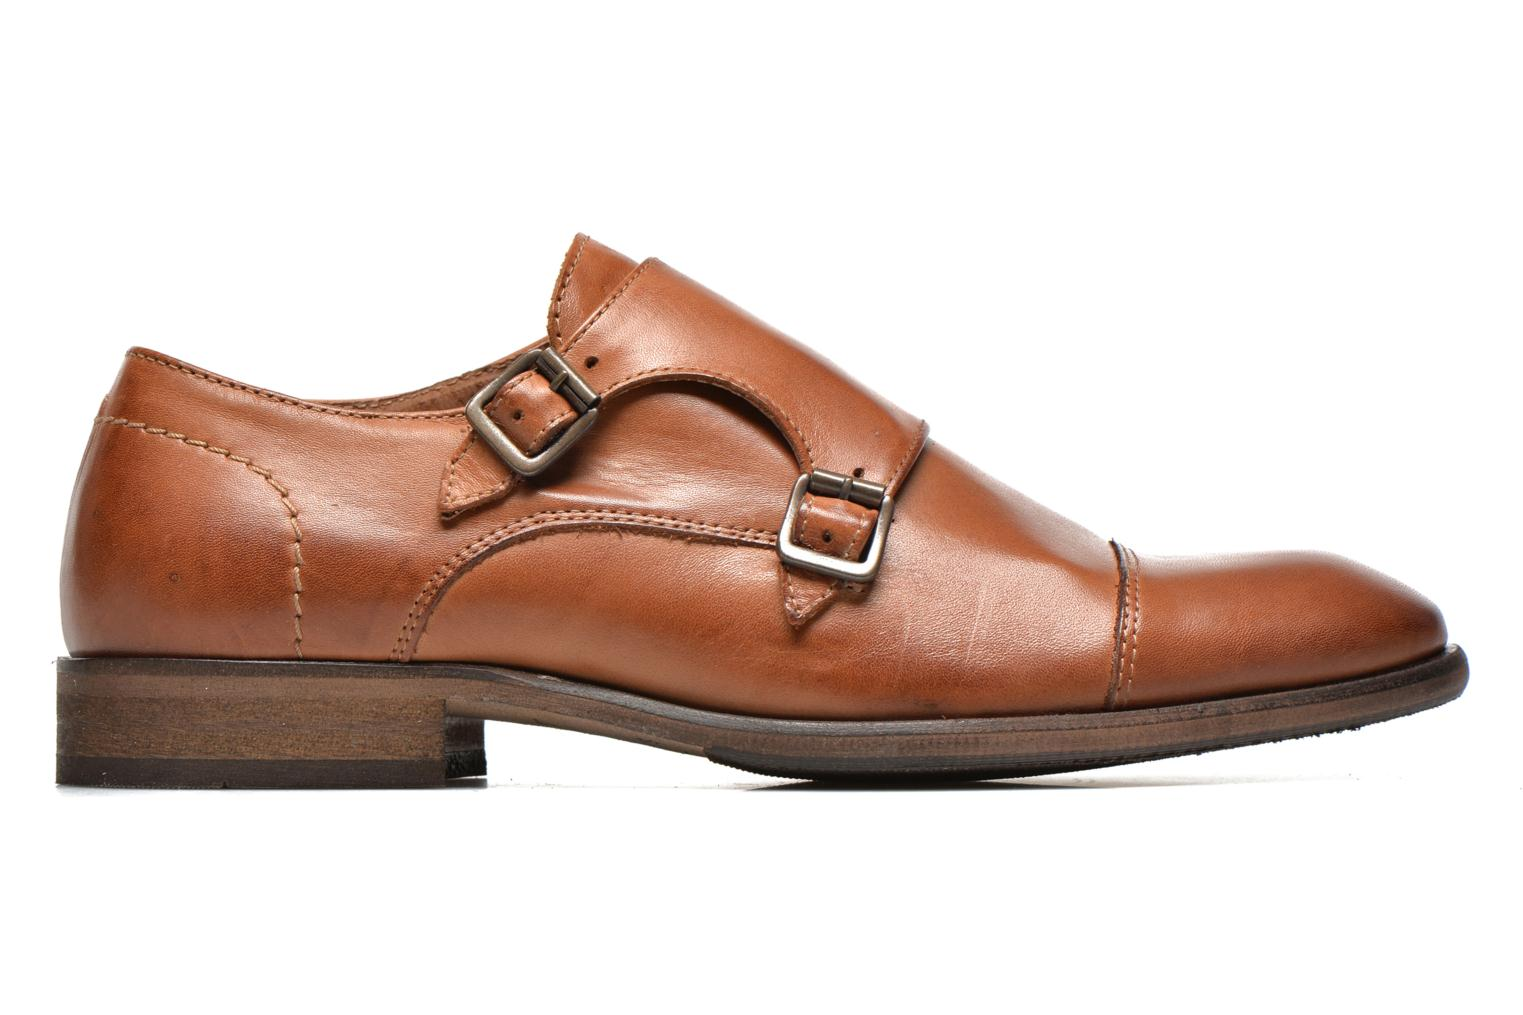 Bolton monk leather